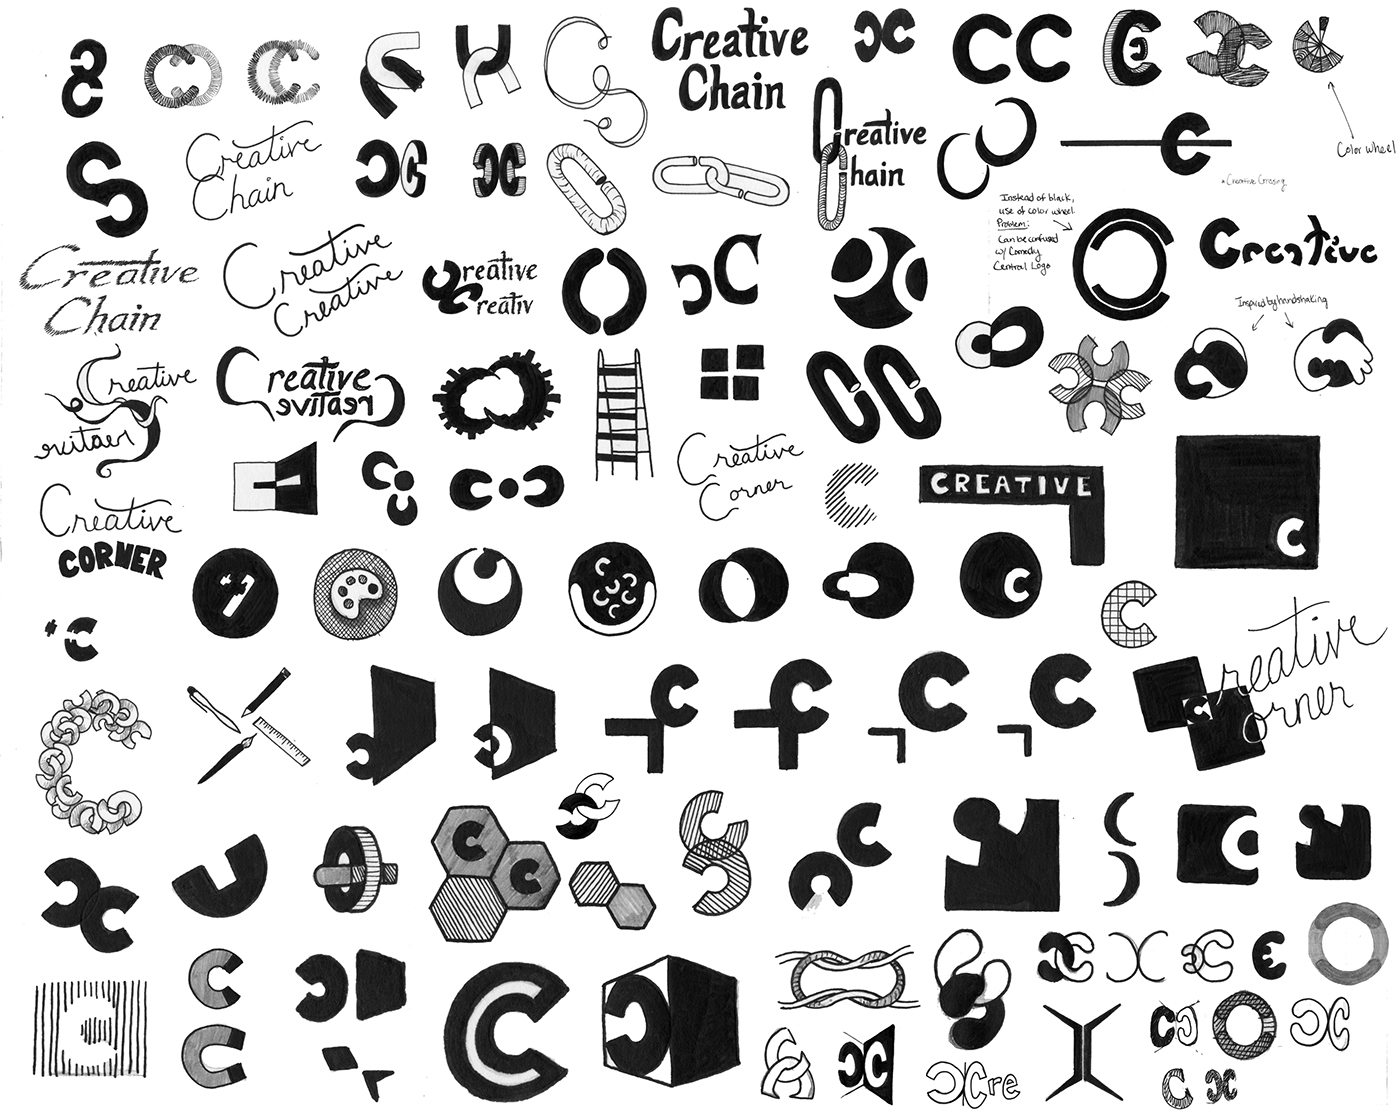 creative corner on behance Alu Shcematic Symbol ments